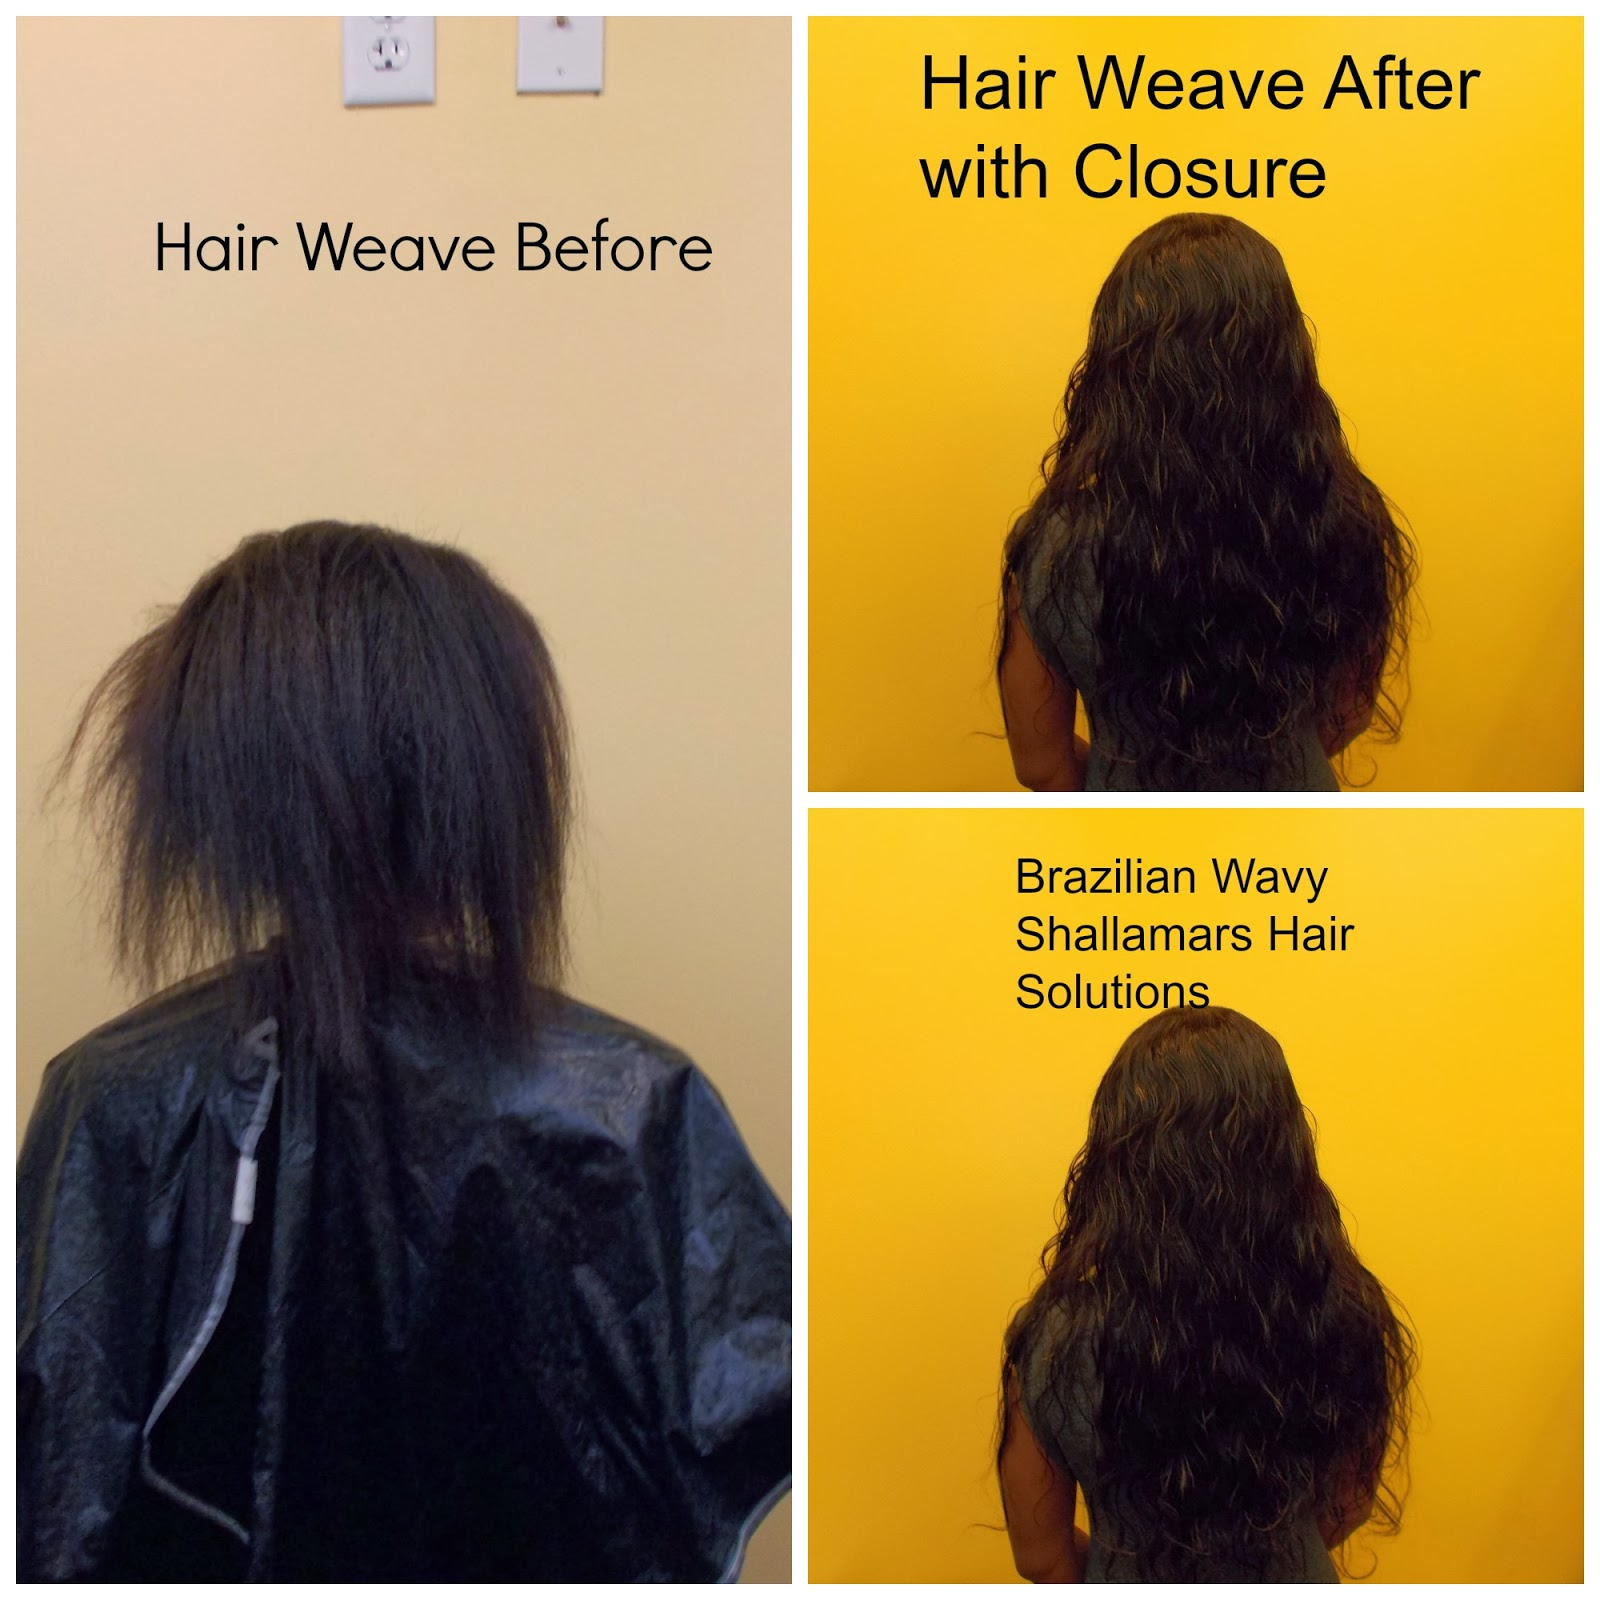 Weave specialist in orlando shallamars hair sollutions our weave specialist in orlando uses only the best grade of hair for all hair weaves experience in closure and lace frontage clients experience a flat pmusecretfo Choice Image